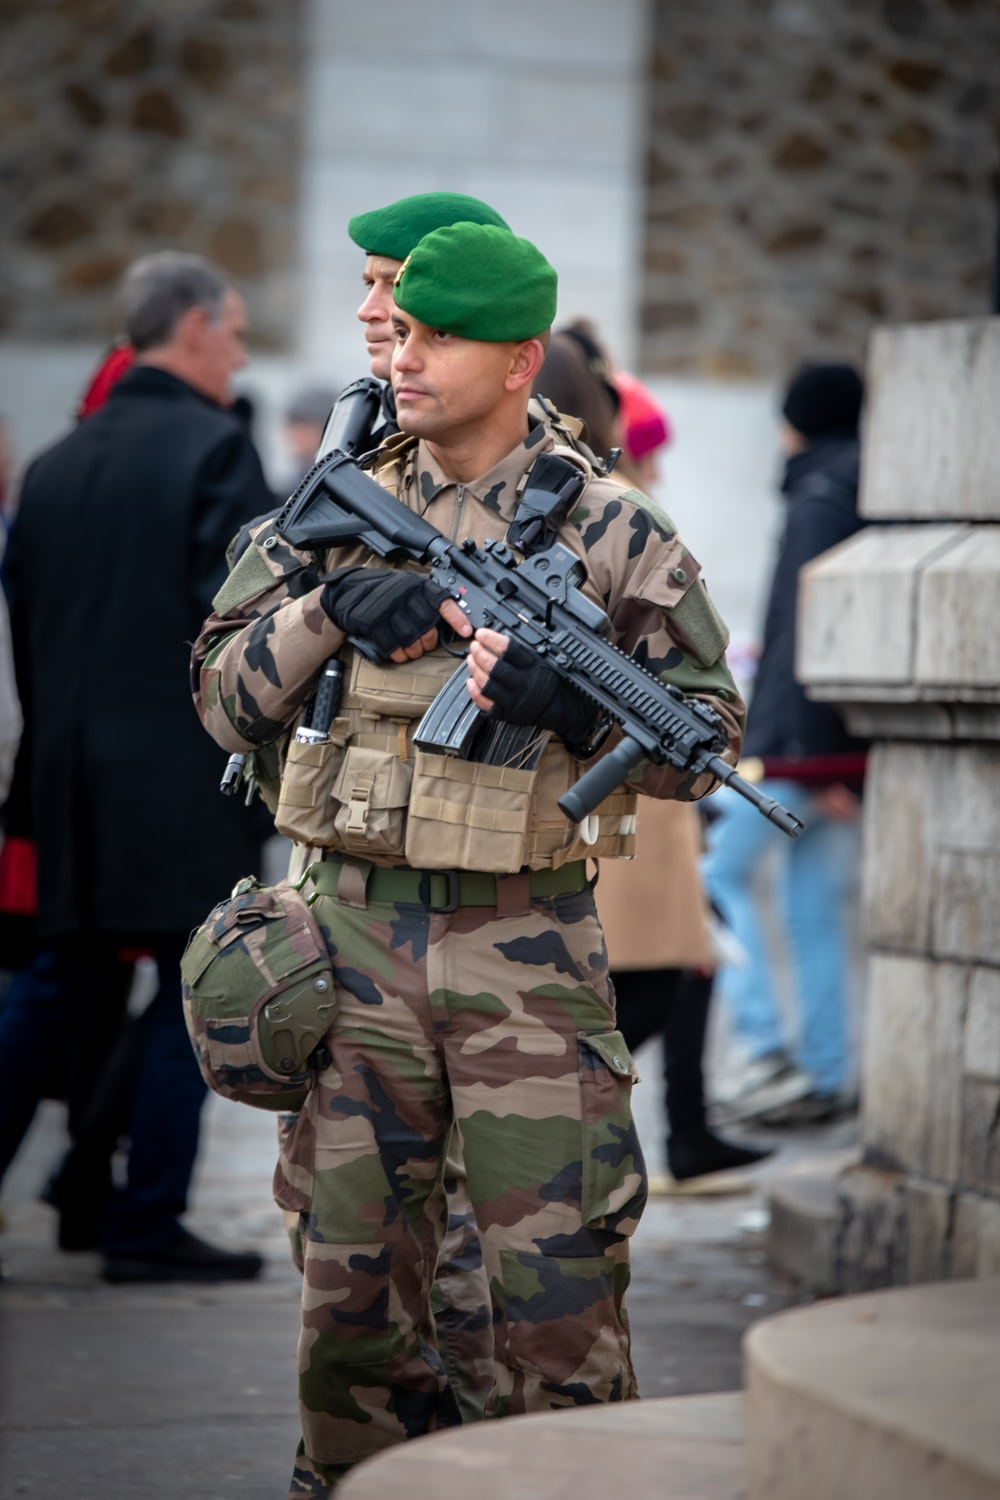 soldier with rifle stands guard in front of building